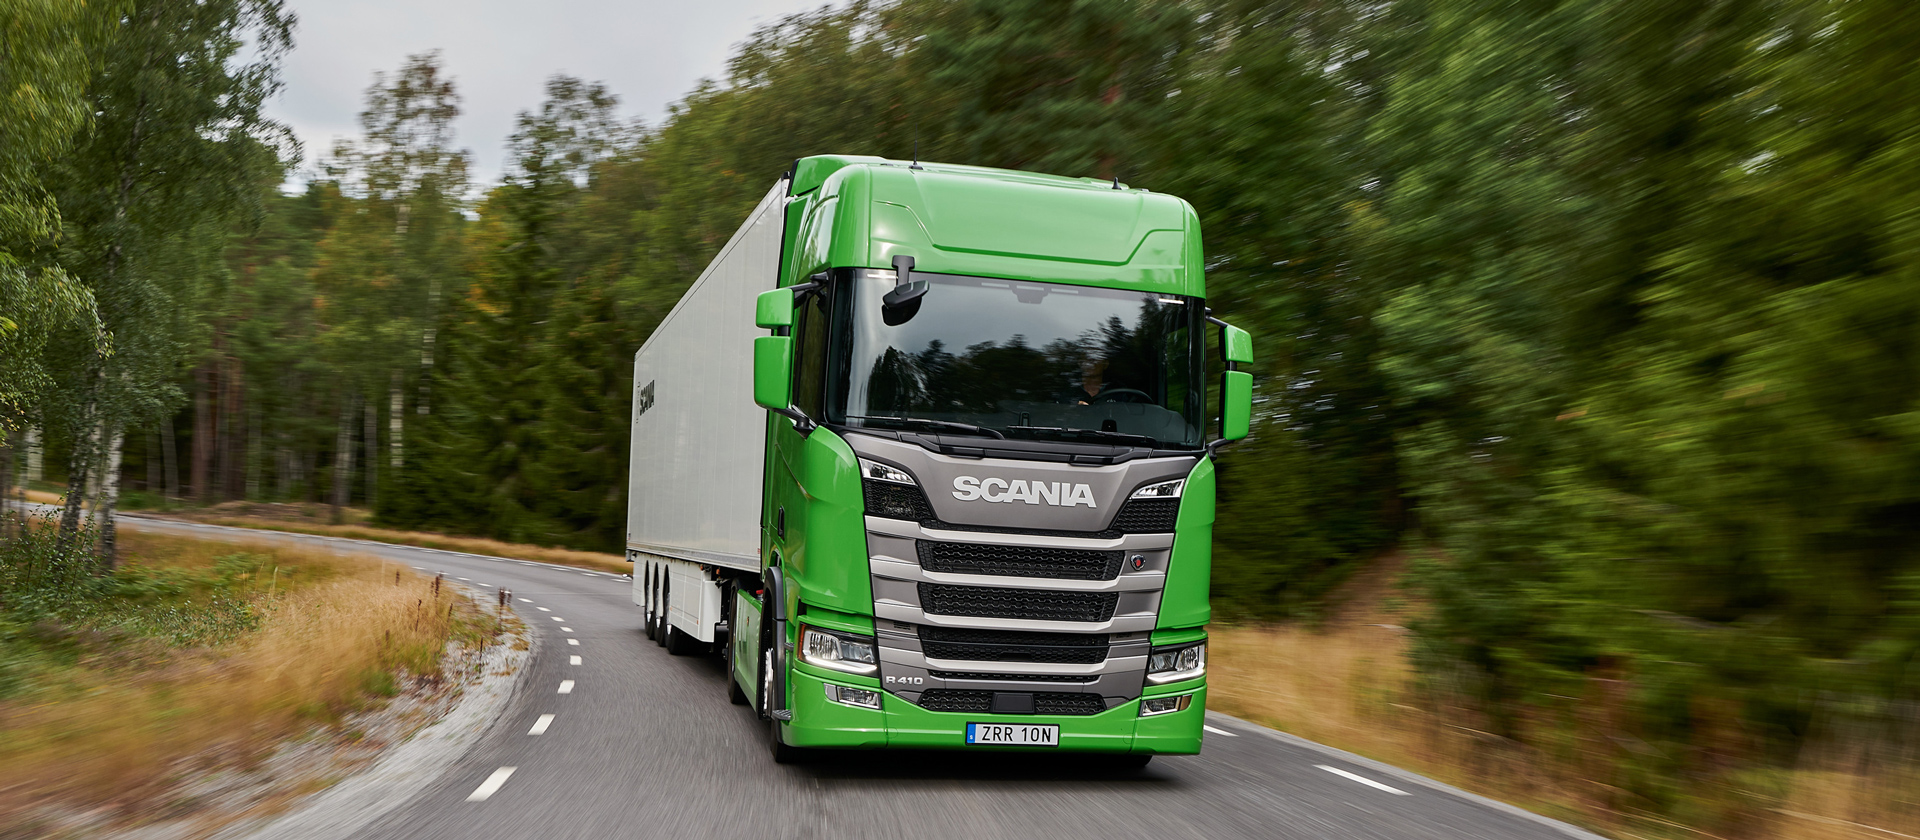 Scania wins Green truck award for the fifth time in a row